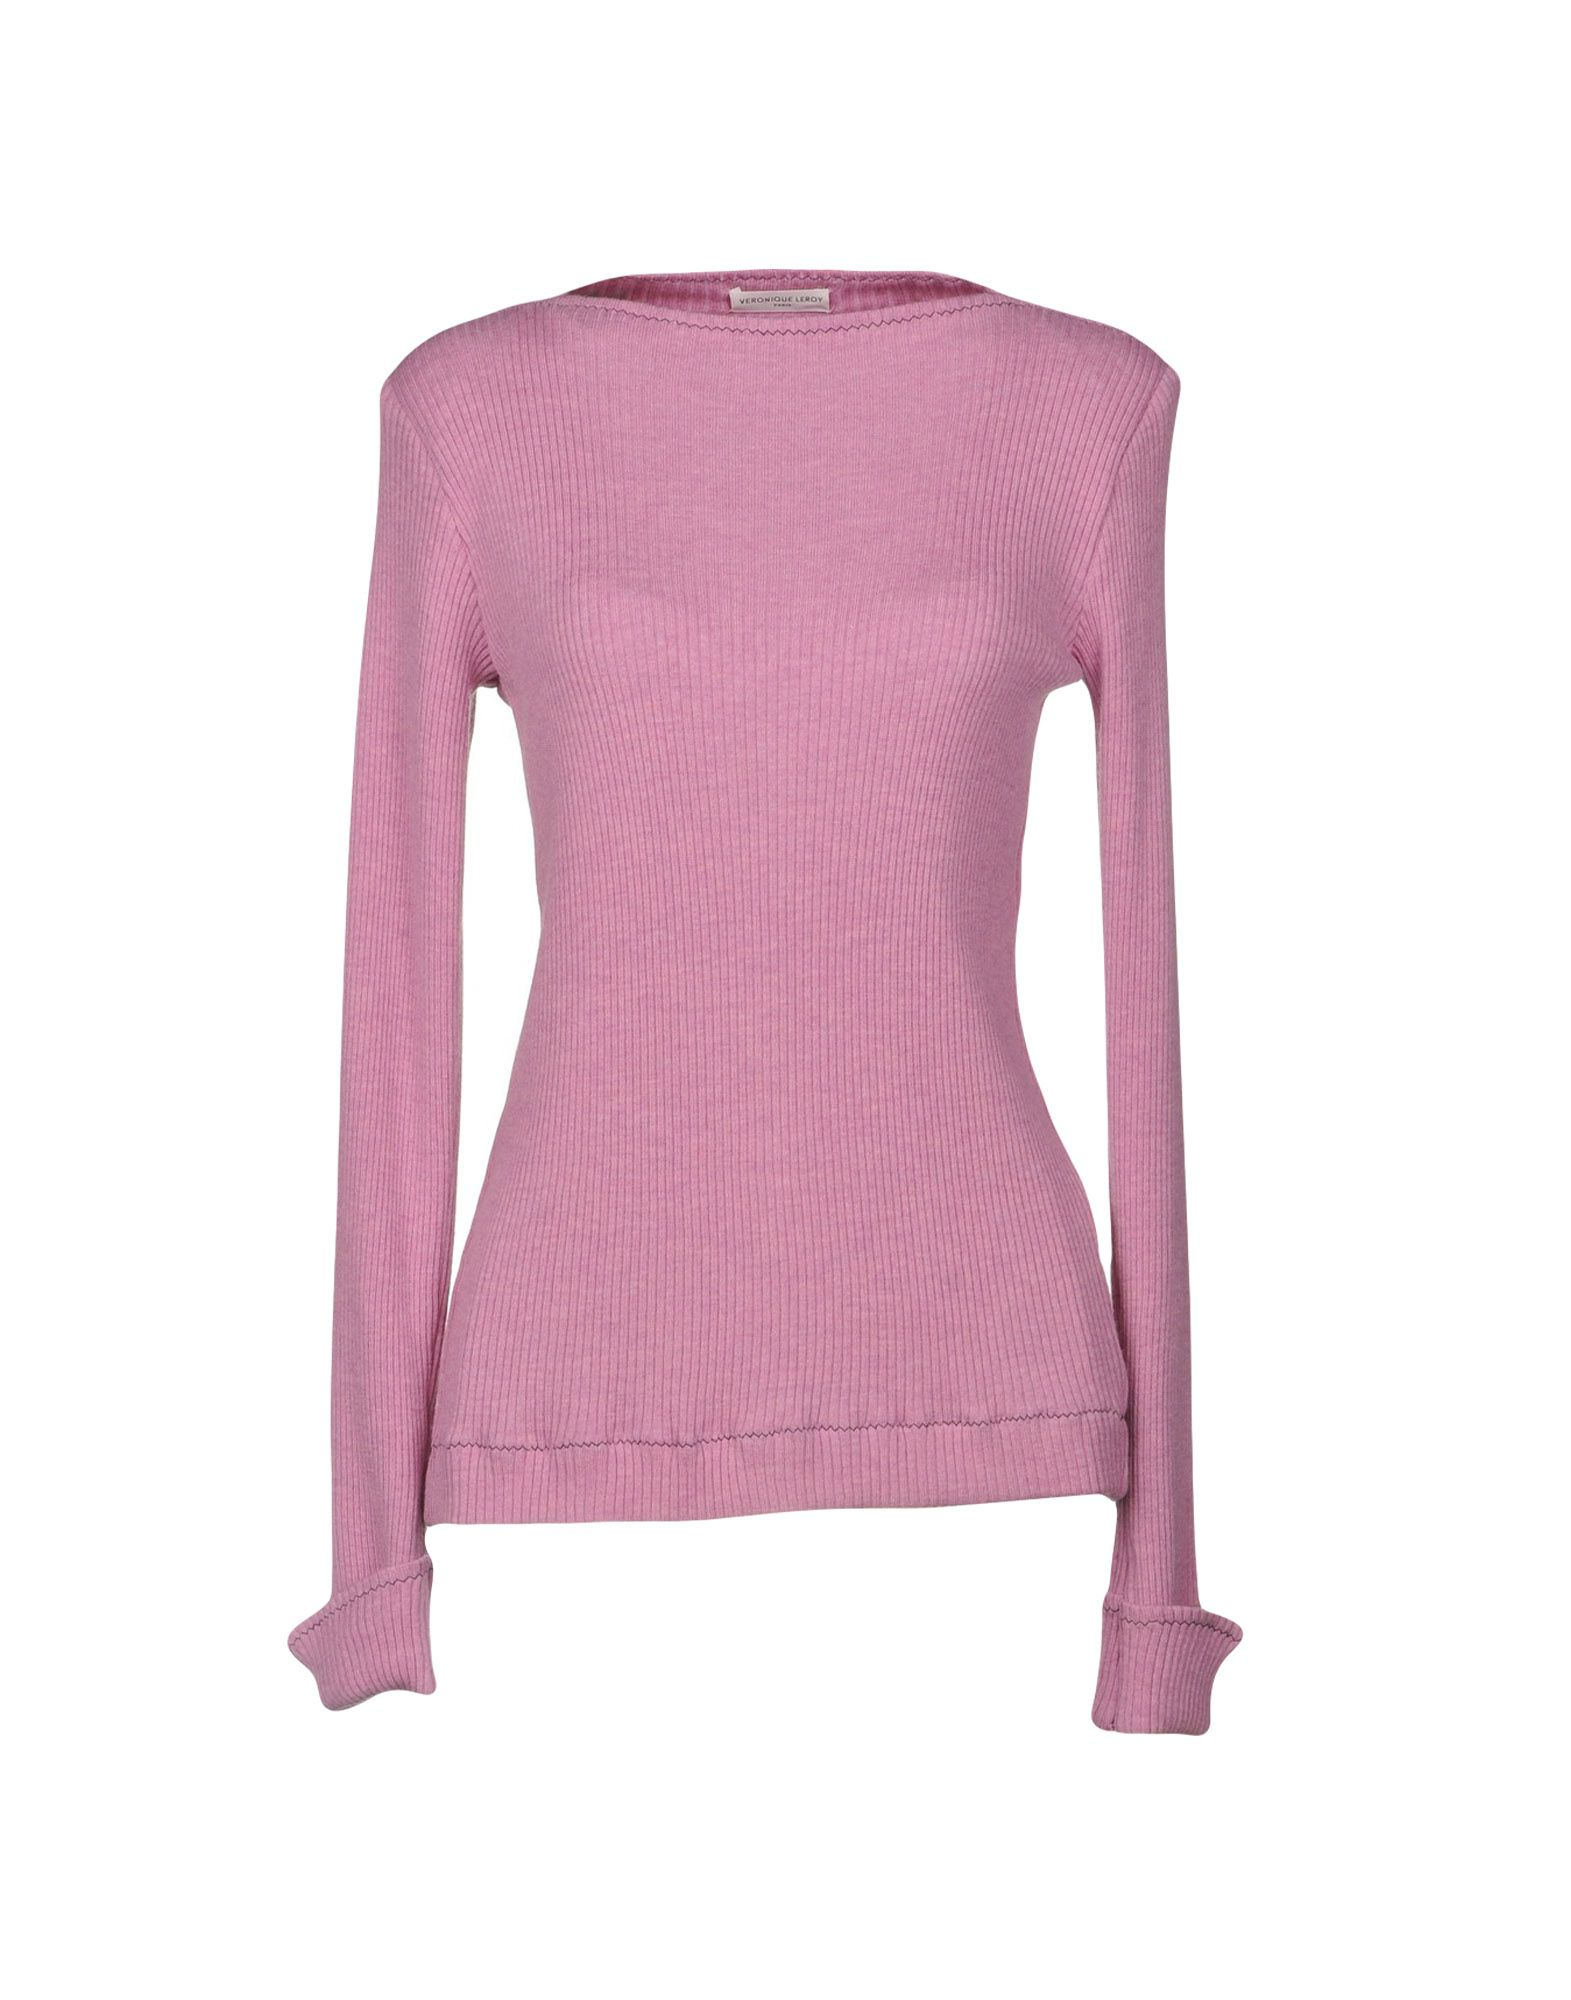 VERONIQUE LEROY Sweaters in Pastel Pink